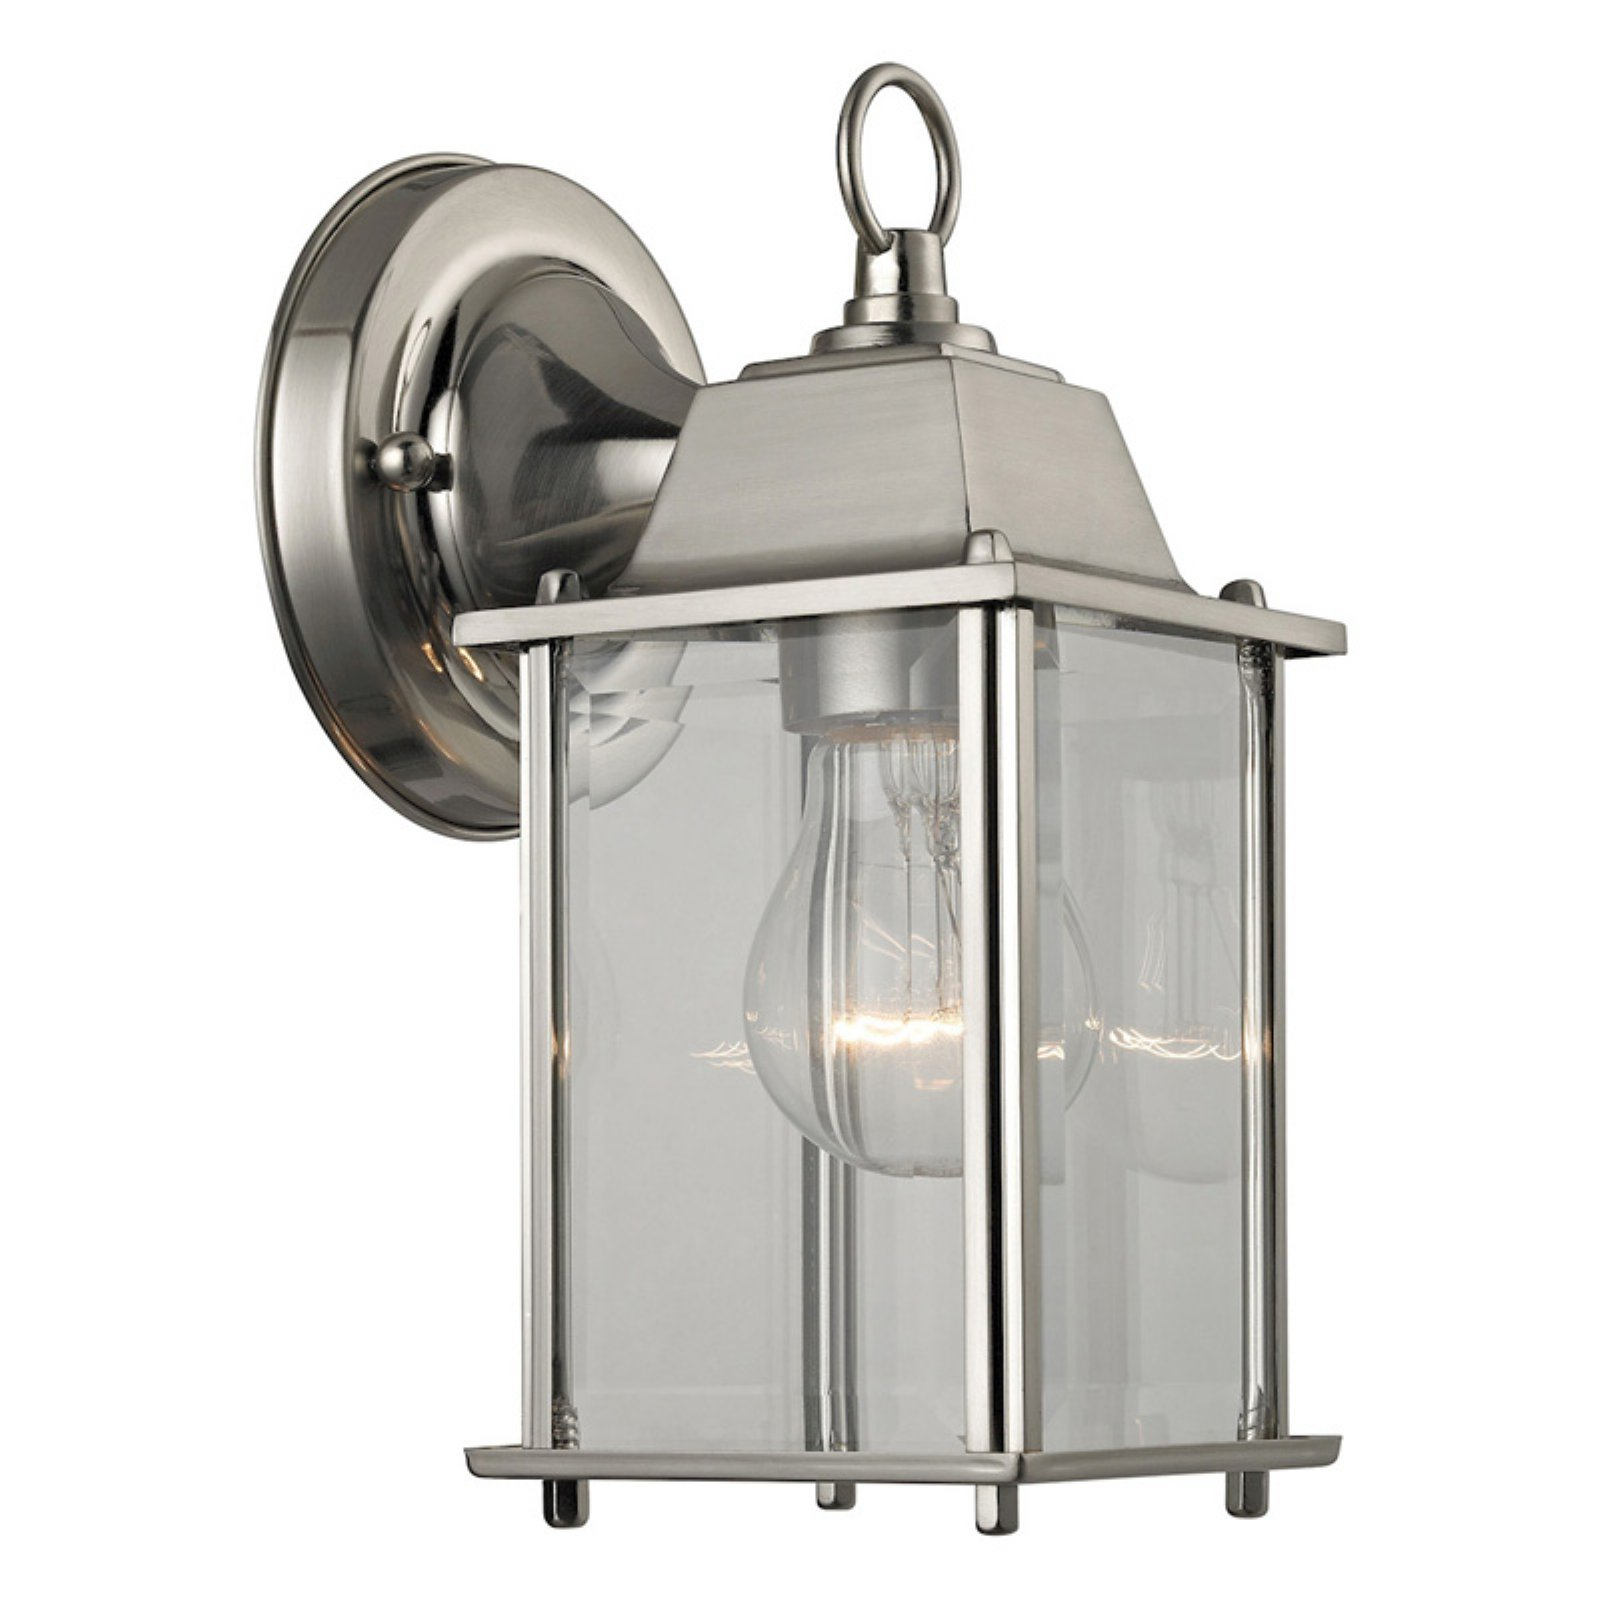 Thomas Lighting Traditional Lantern 9231 Outdoor Wall Sconce